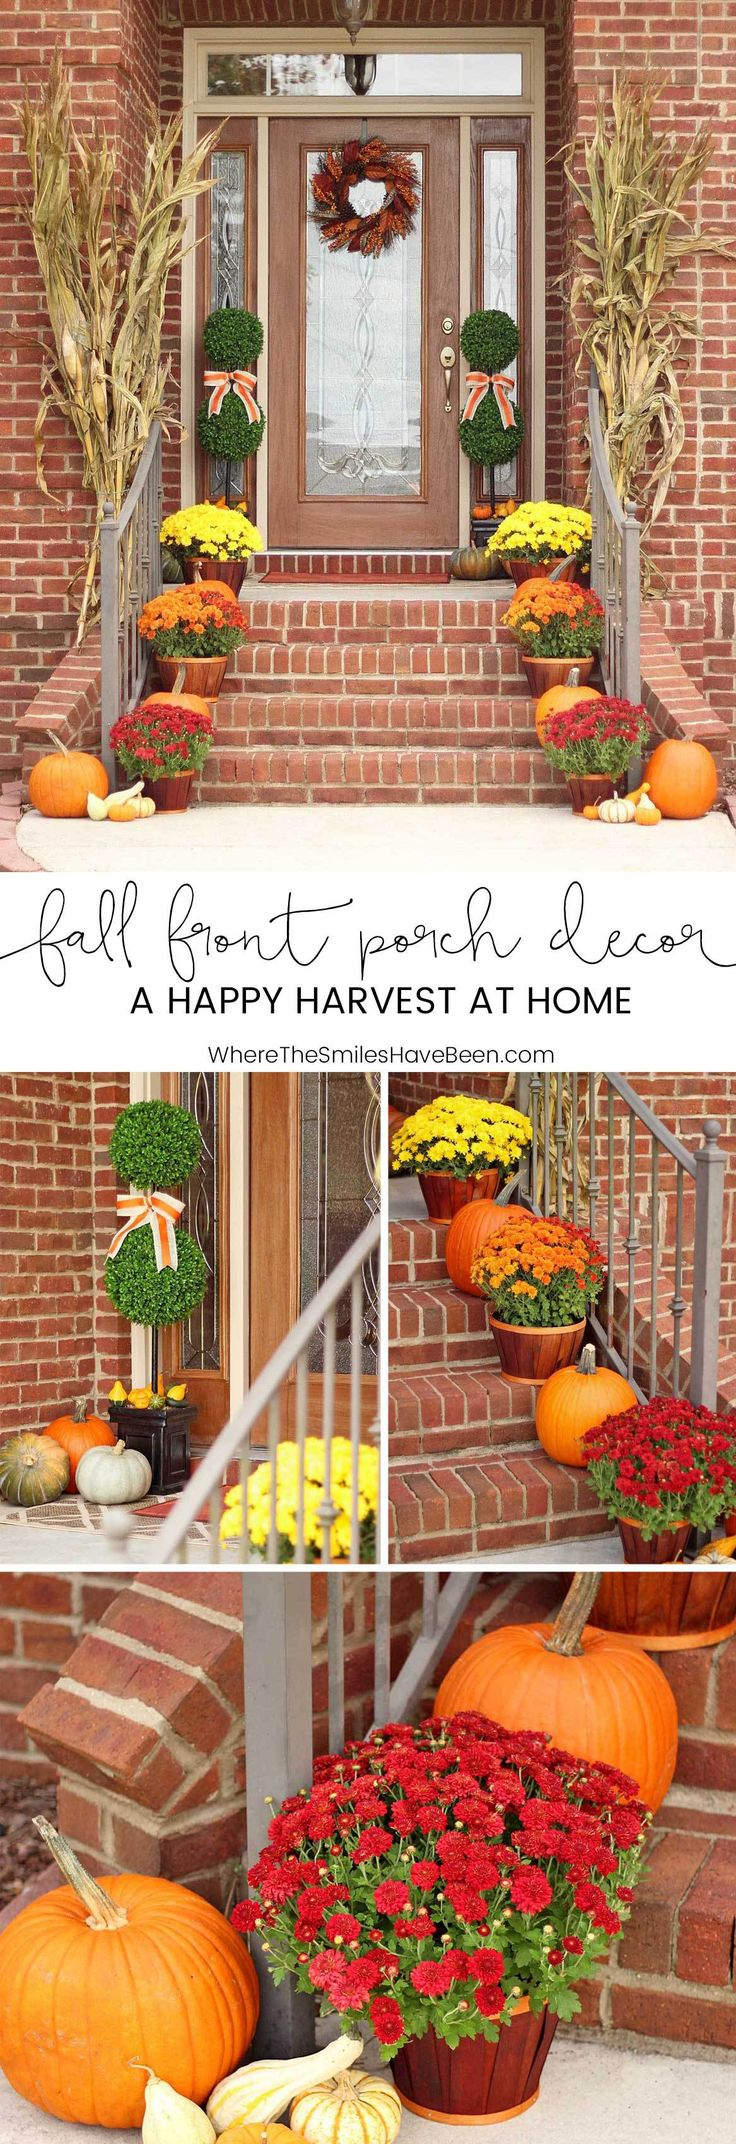 Fall Front Porch Decor: Our Happy Harvest at Home! | Where The Smiles Have Been ...